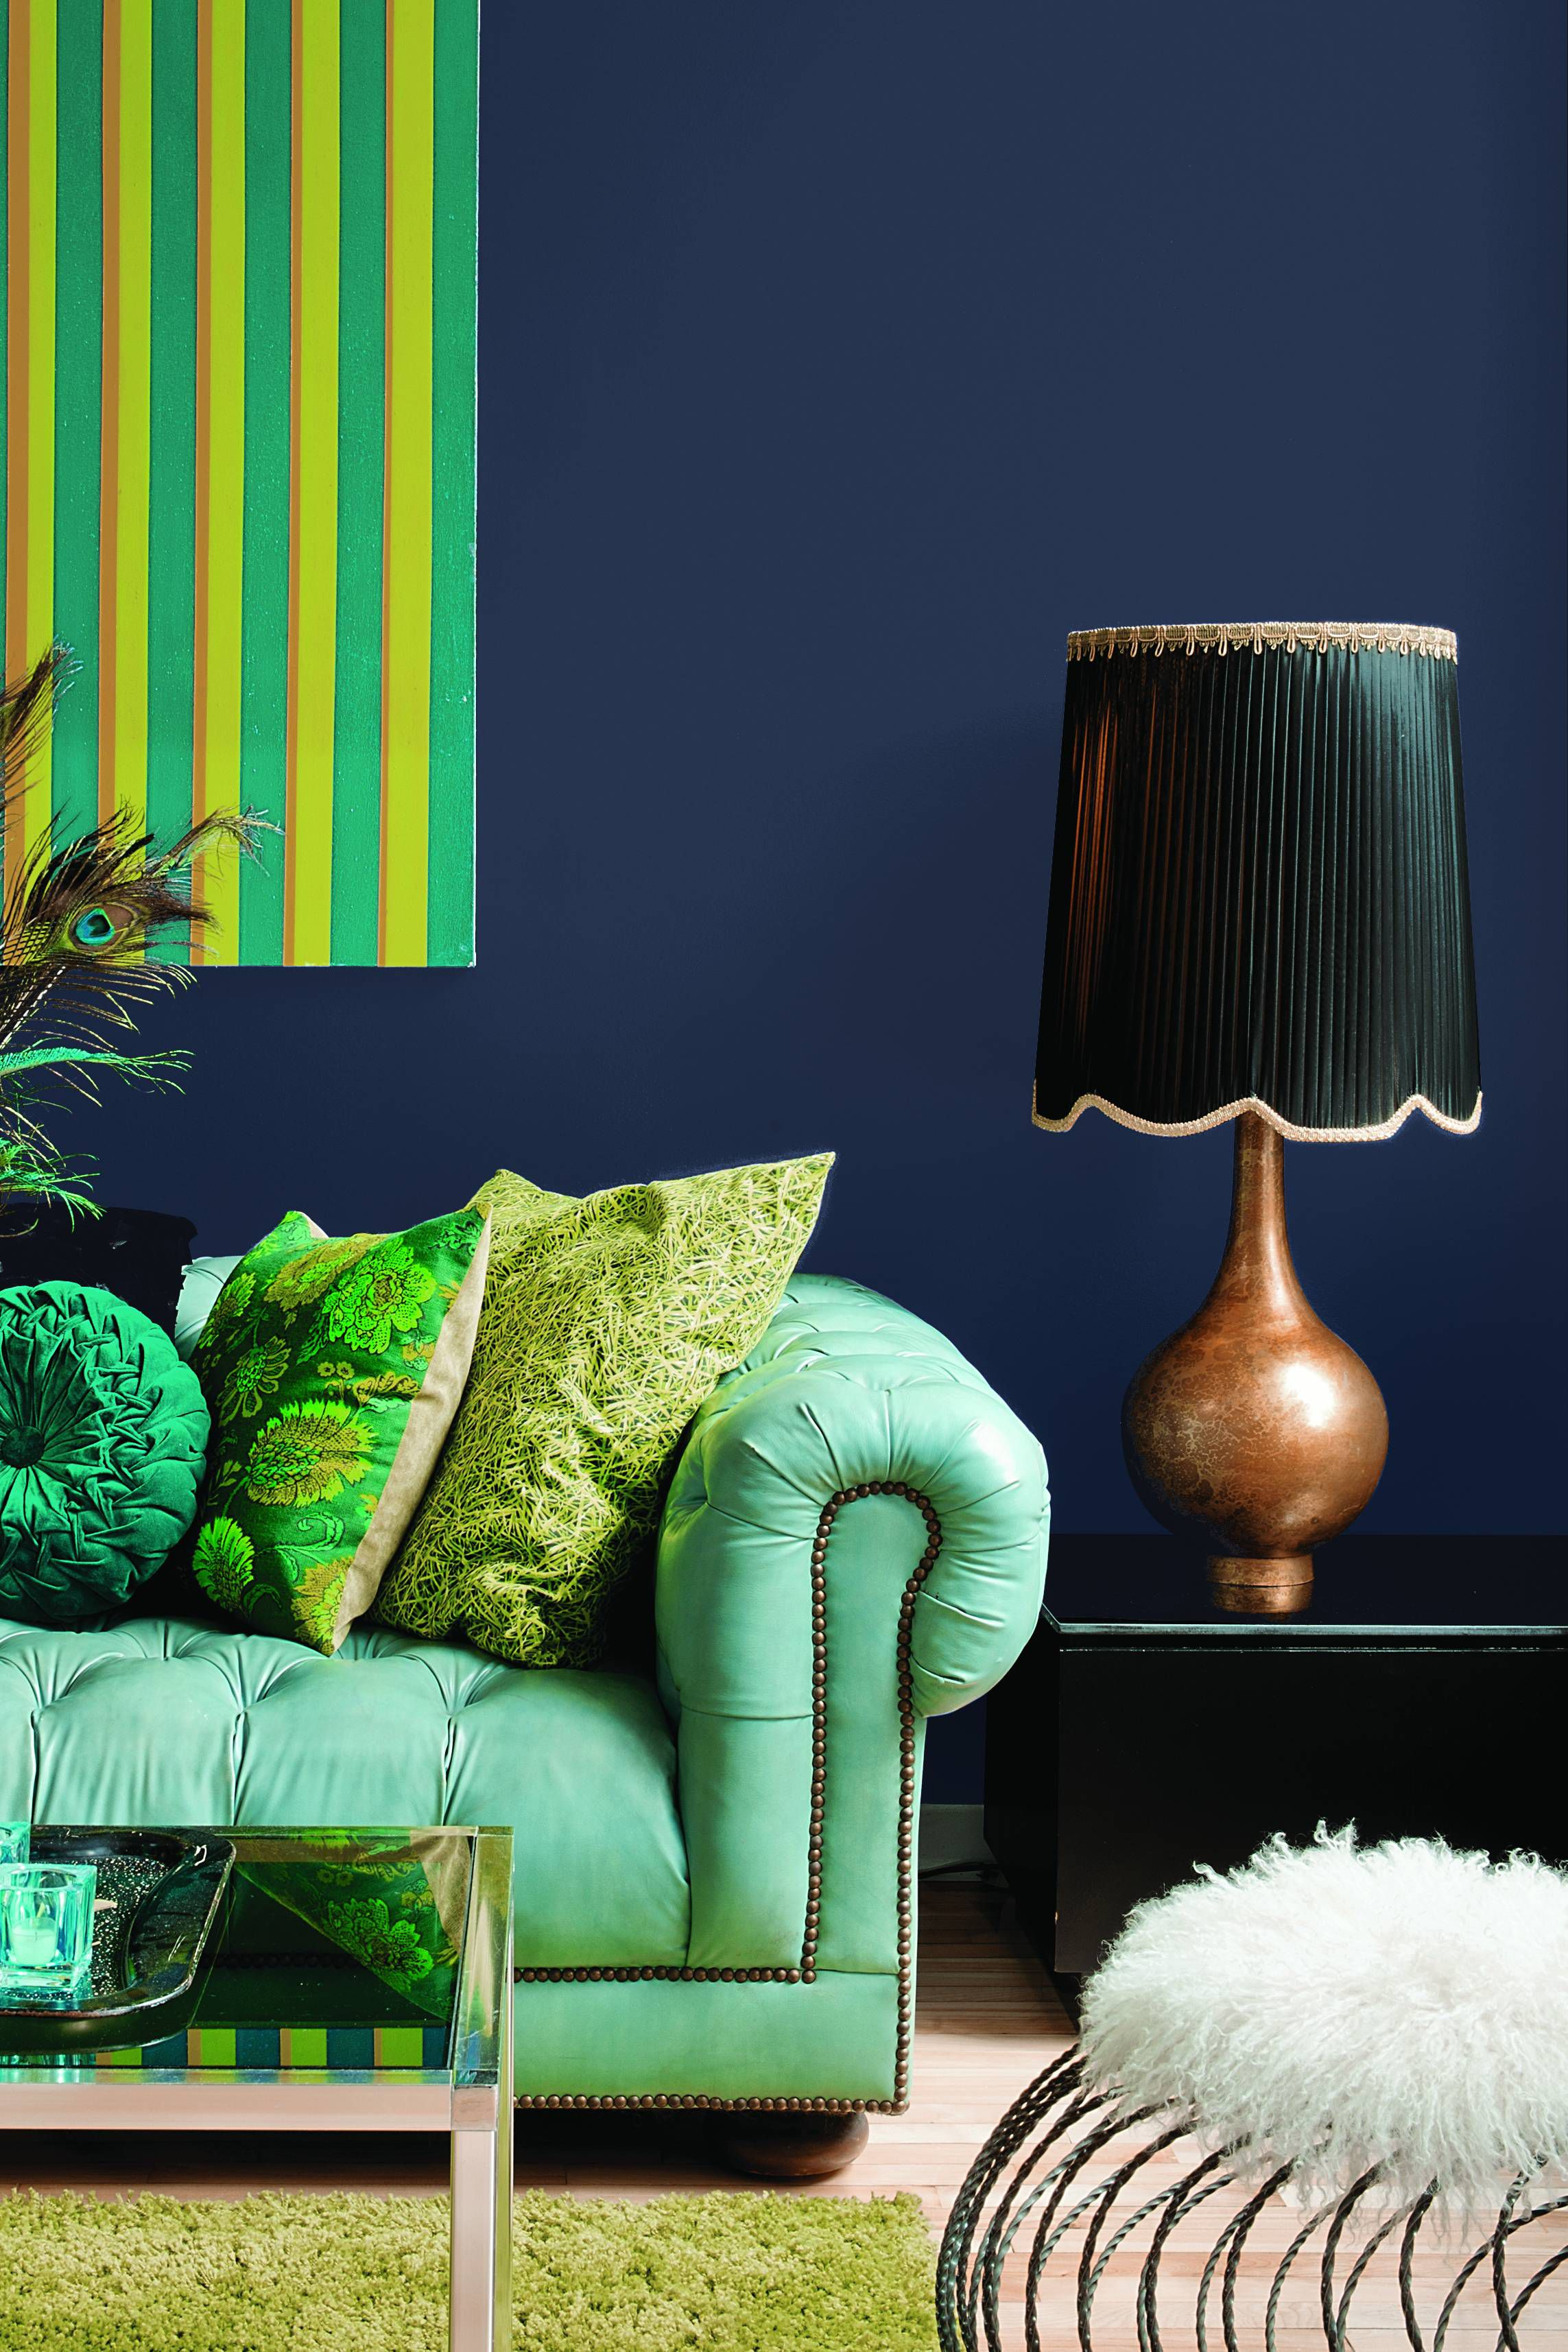 Falls coolest interior design trends the globe and mail